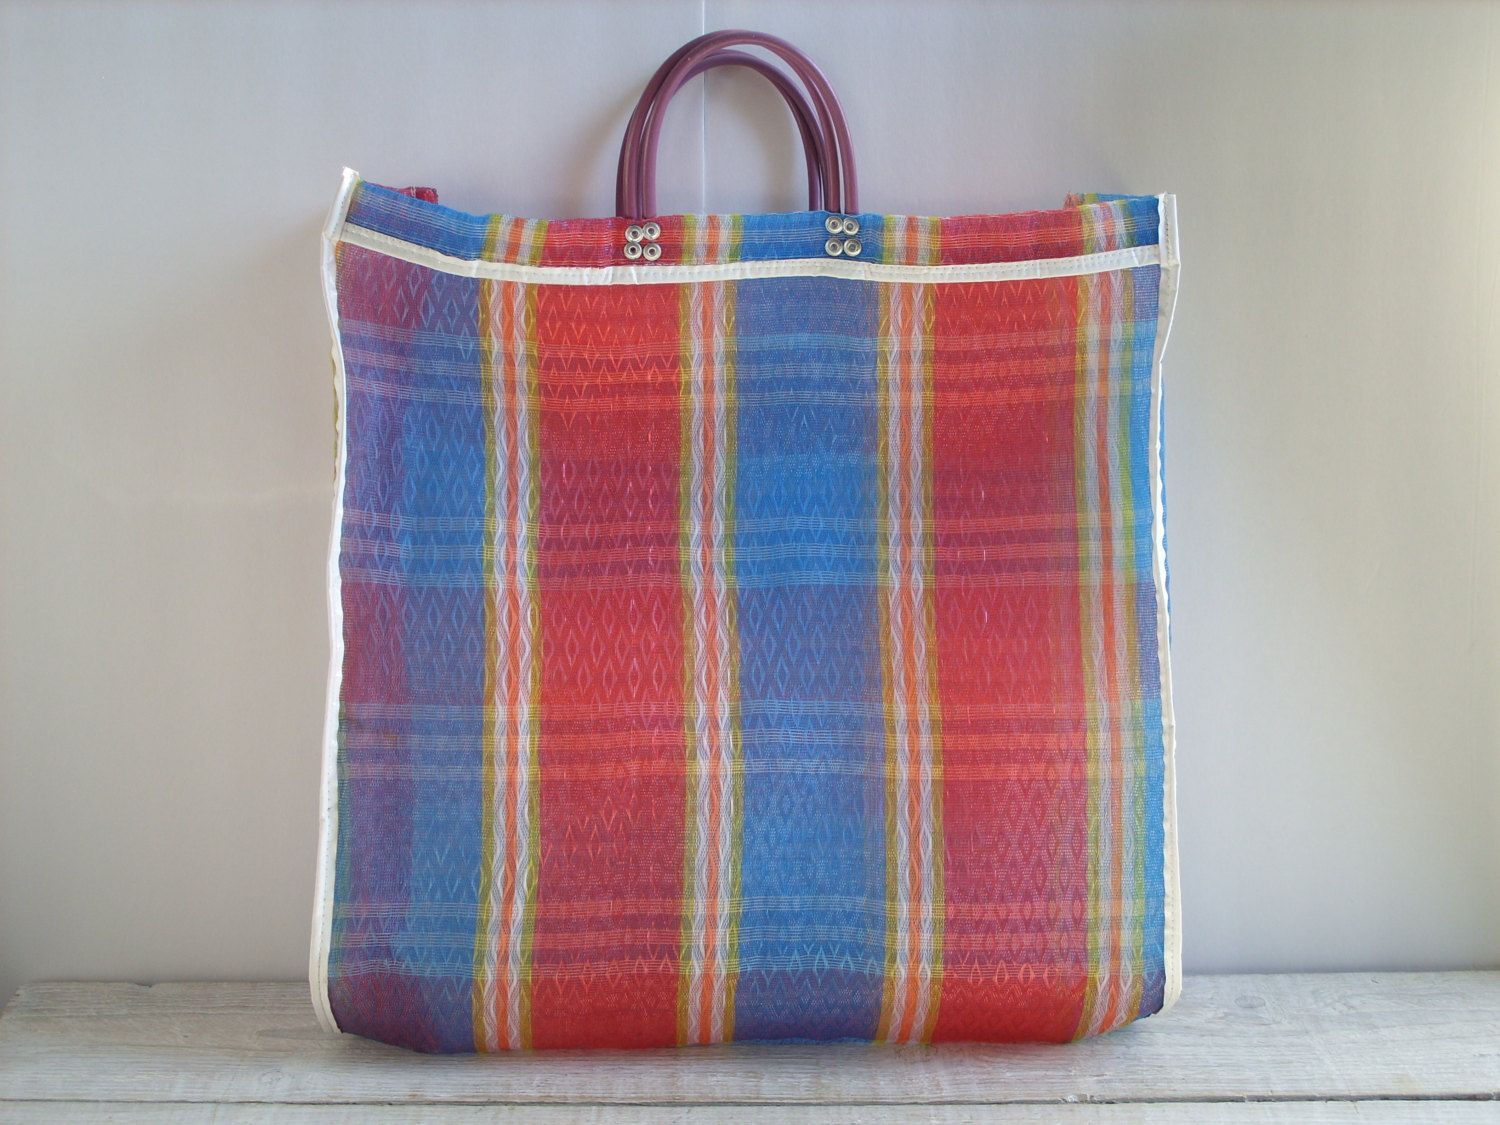 d708c1b575c9 Vintage Shopping Bag ~ Reuseable Plastic Mesh Plaid Market Grocery Tote ~  Red Blue Beach Bag by RetrOAmyO on Etsy